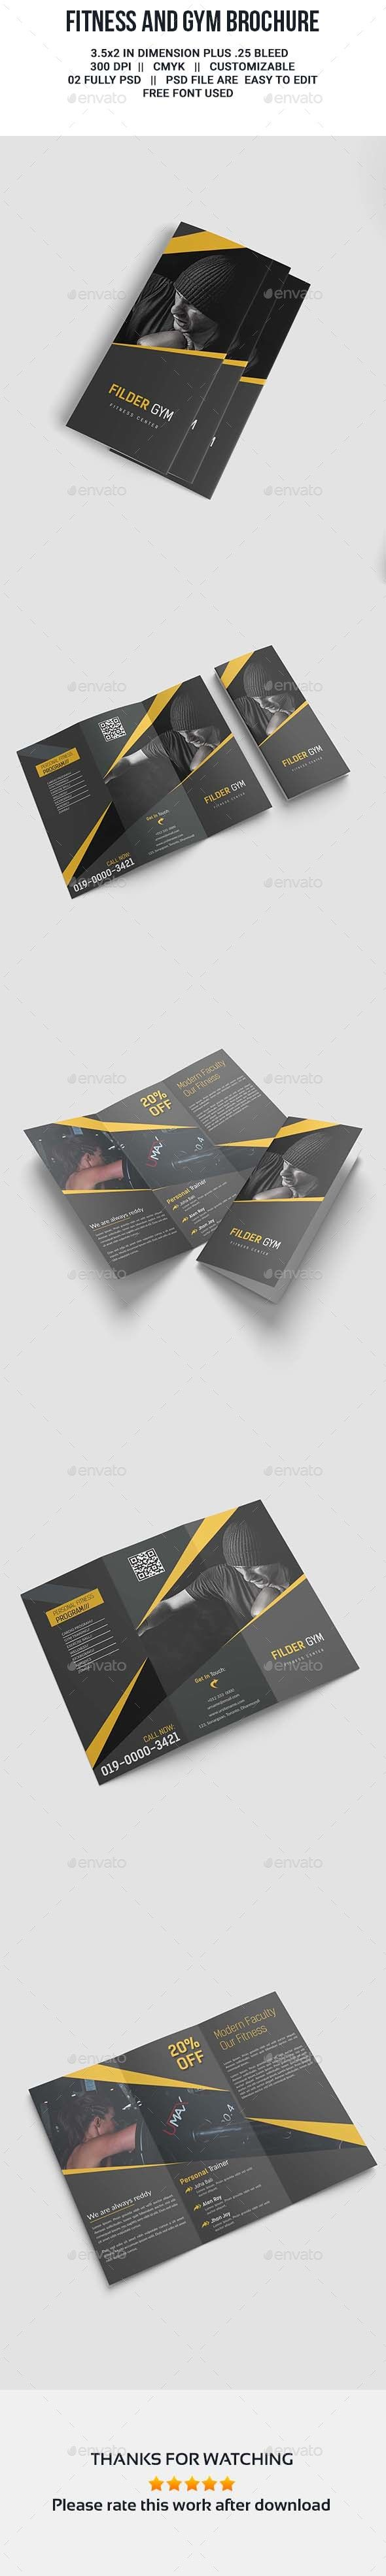 Fitness and Gym TriFold Brochure - Brochures Print Templates